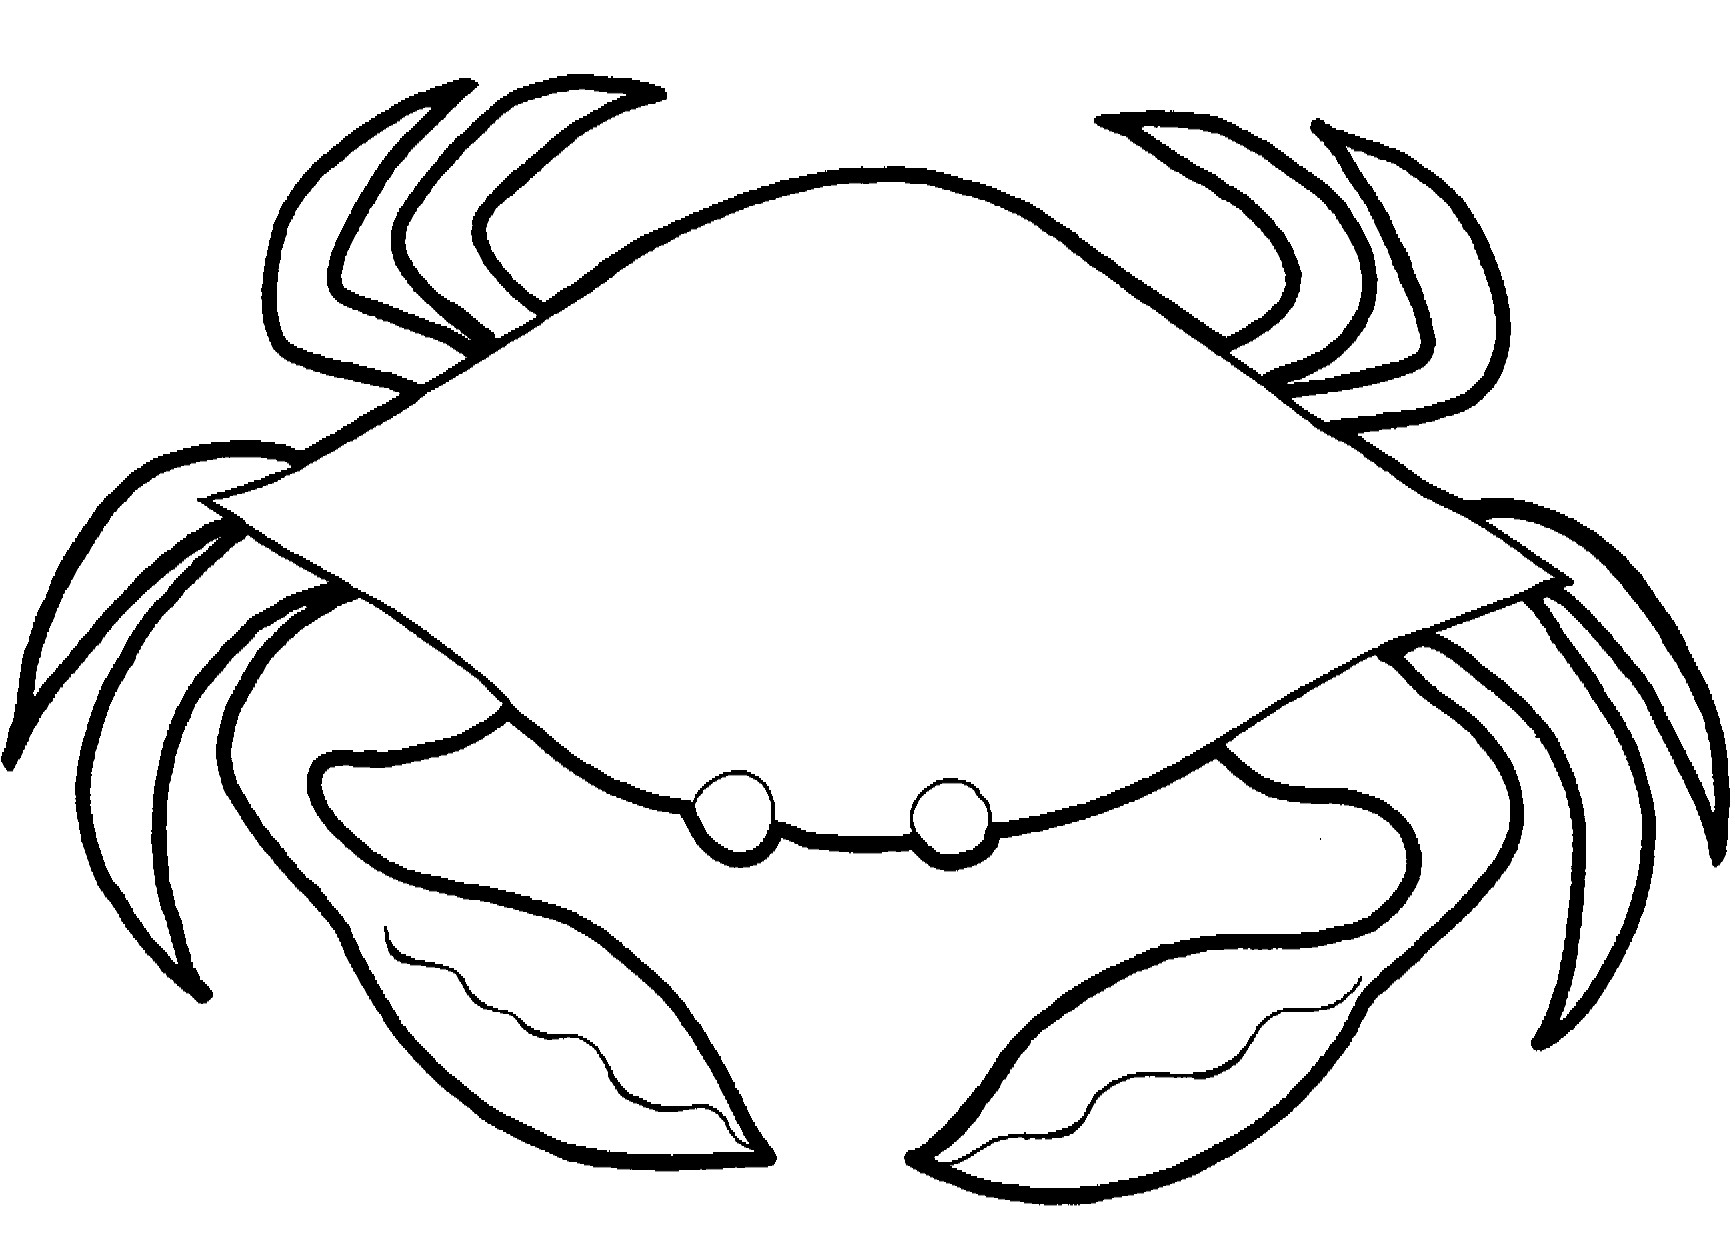 Crabs clipart drawn. Crab drawing free download